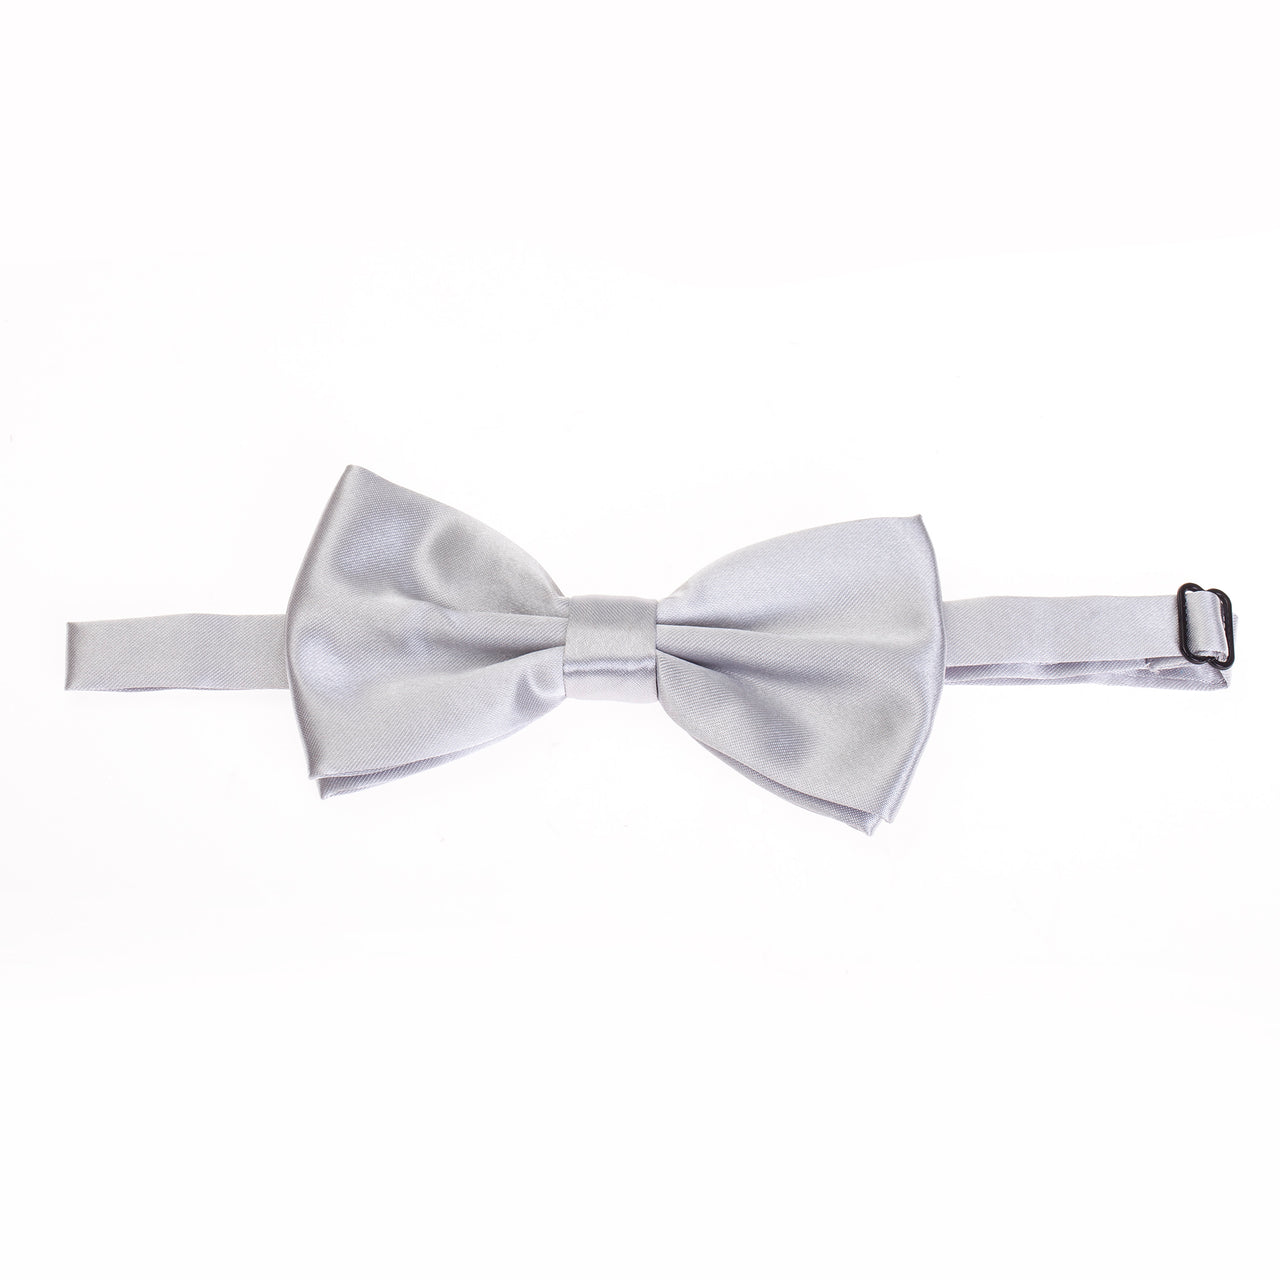 Pre-tied Plain Satin Bow Tie - Light Grey